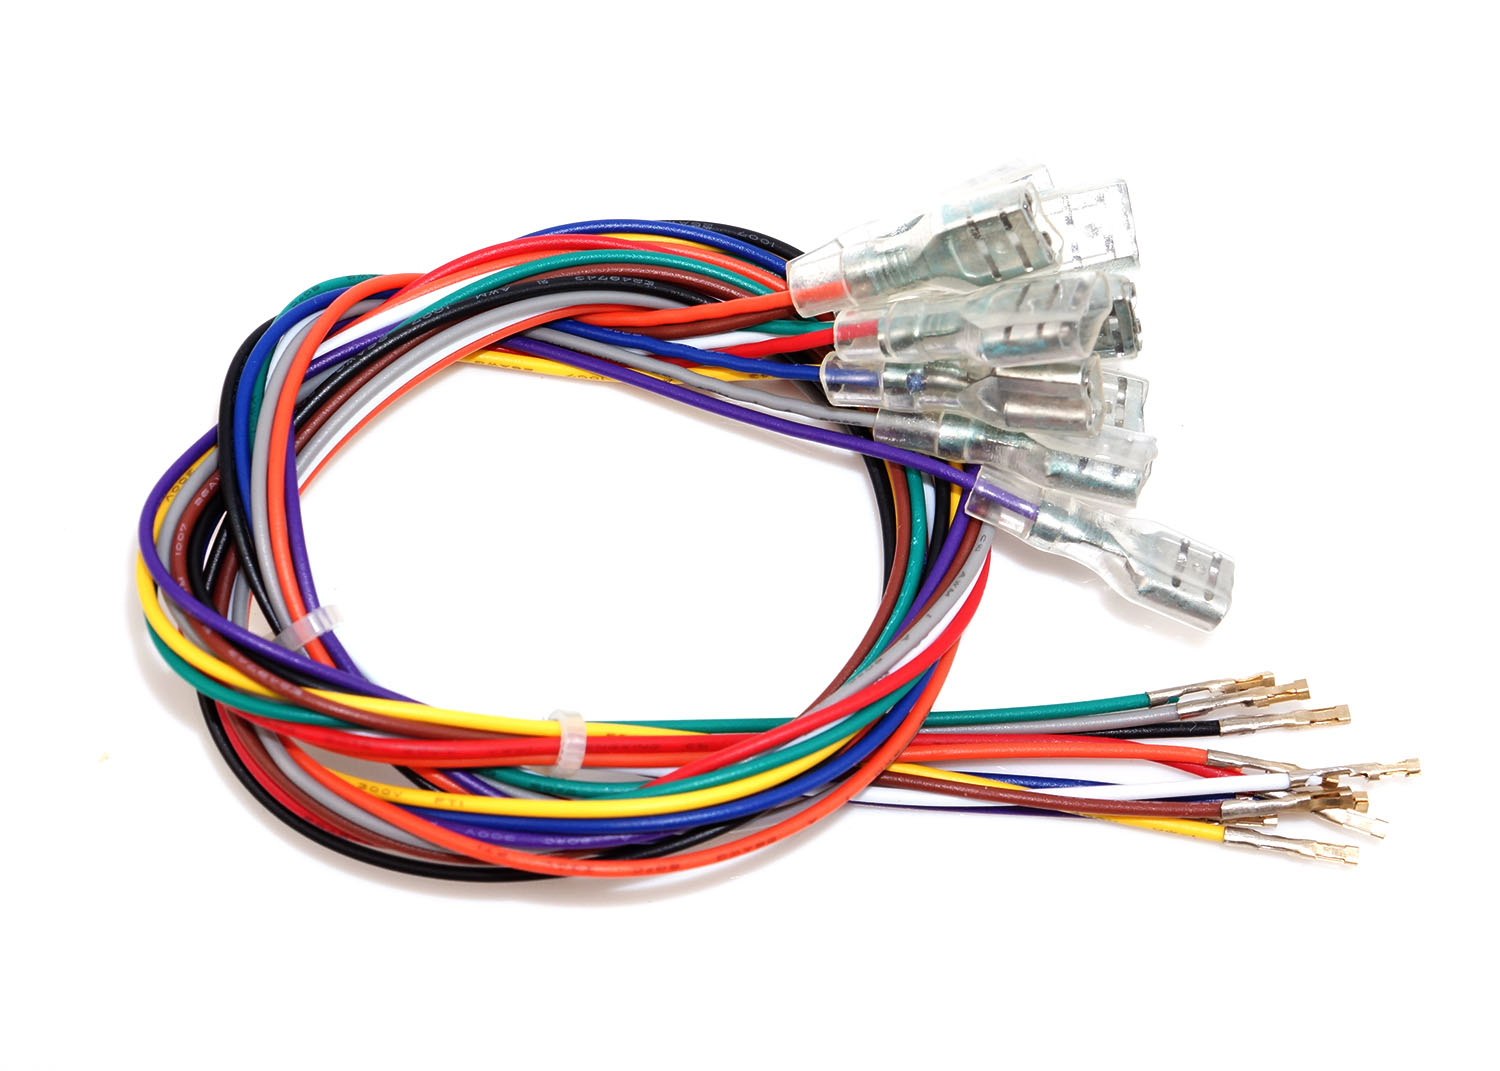 Painless 20122 Wiring Harness 1969 Mustang Wiring Harness 1970 Mustang